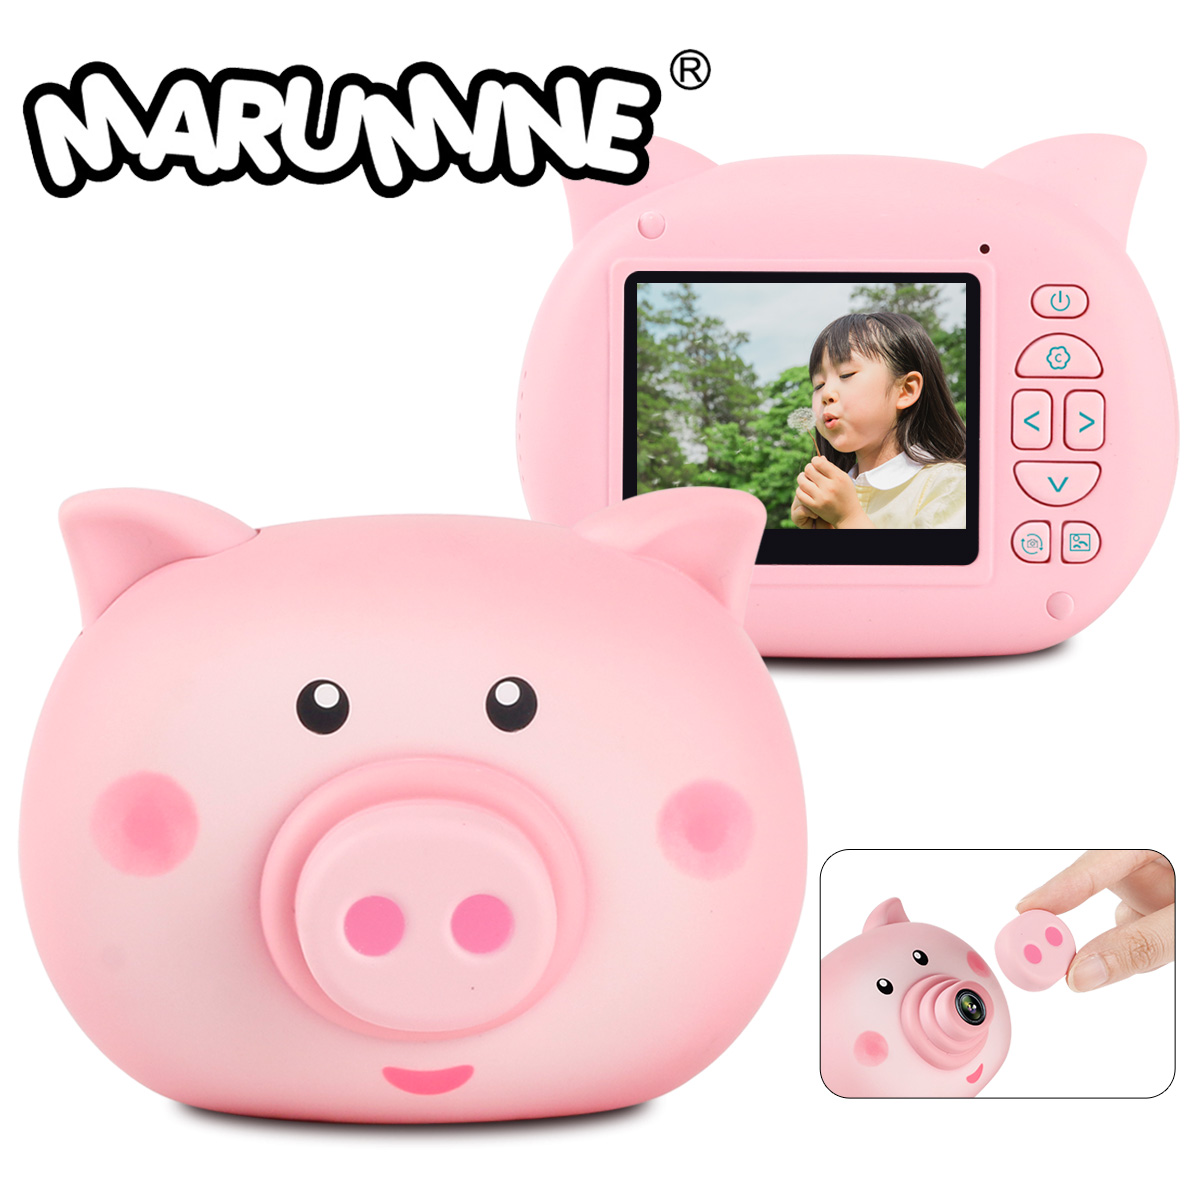 Marumine HD Kids Digital Camera 12.0 Mega Piexl With 2.3 Inch Screen Electronic Timed Shooting Camera Toy Photography